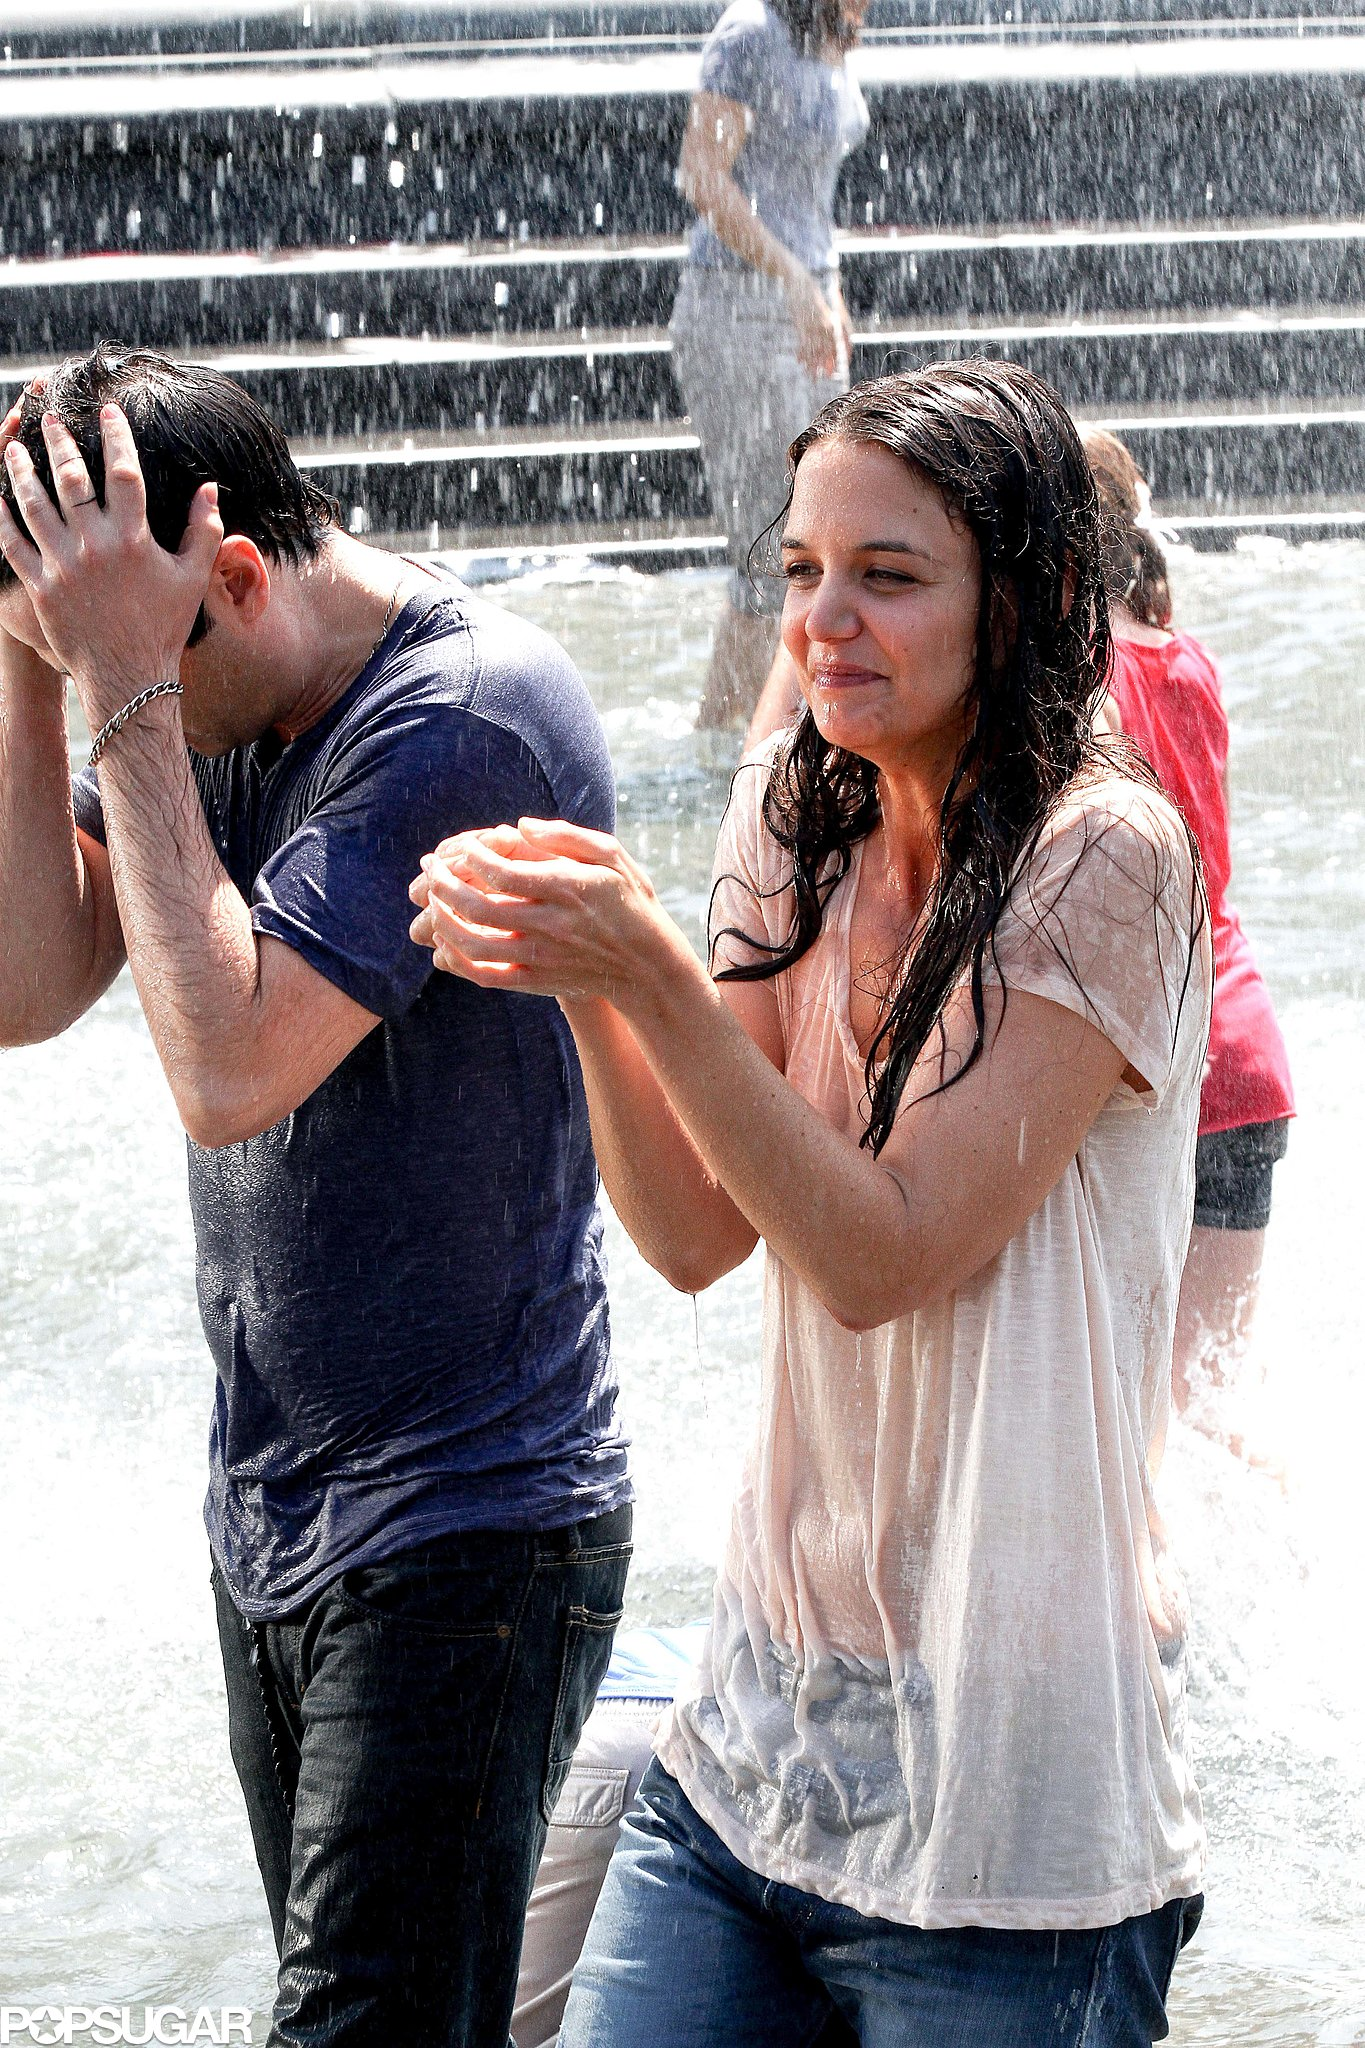 Katie Holmes Wears a Wet T-Shirt in Washington Square Park!